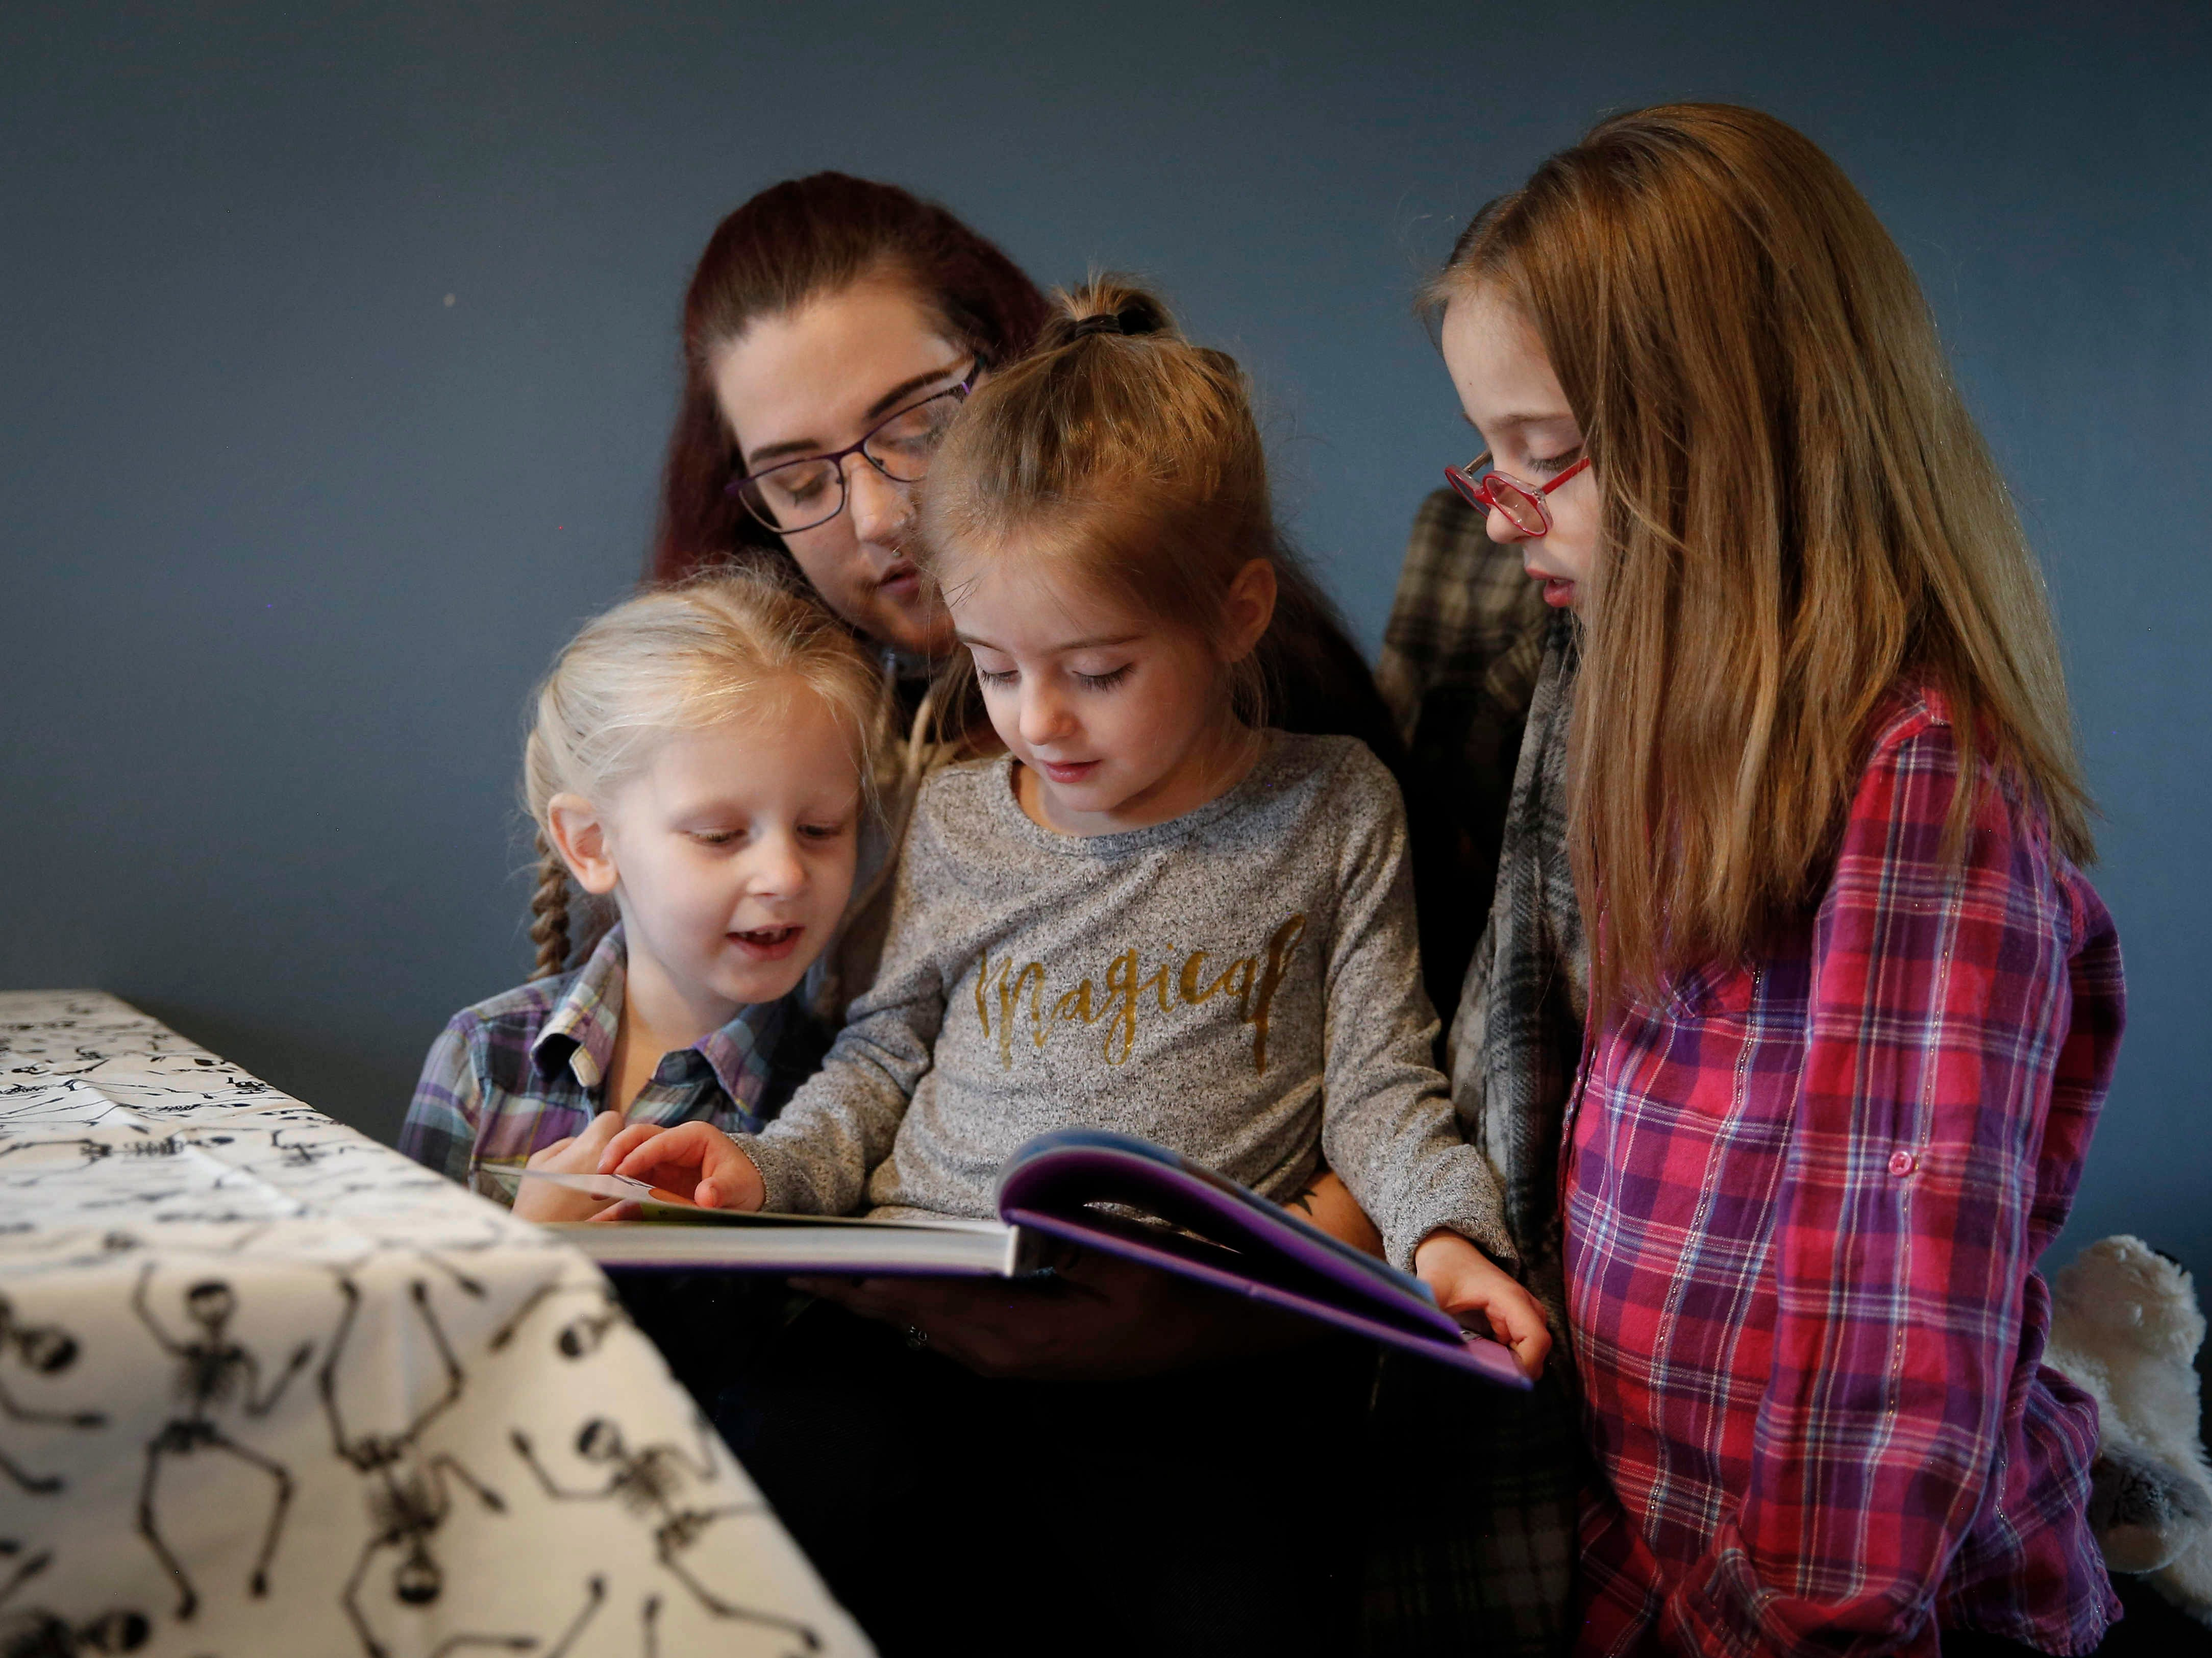 Adley Cooper, 3, reads a Peppa Pig book to her mother, Heather, and sisters Isabella, 5, left, and Avalyn, 8, on Thursday, Oct. 25, 2018, in their Des Moines home. Adley has struggled with epilepsy the majority of her young life and Heather is hopeful legislation will pass in Iowa that will allow the use of medical marijuana to help ease the seizures.